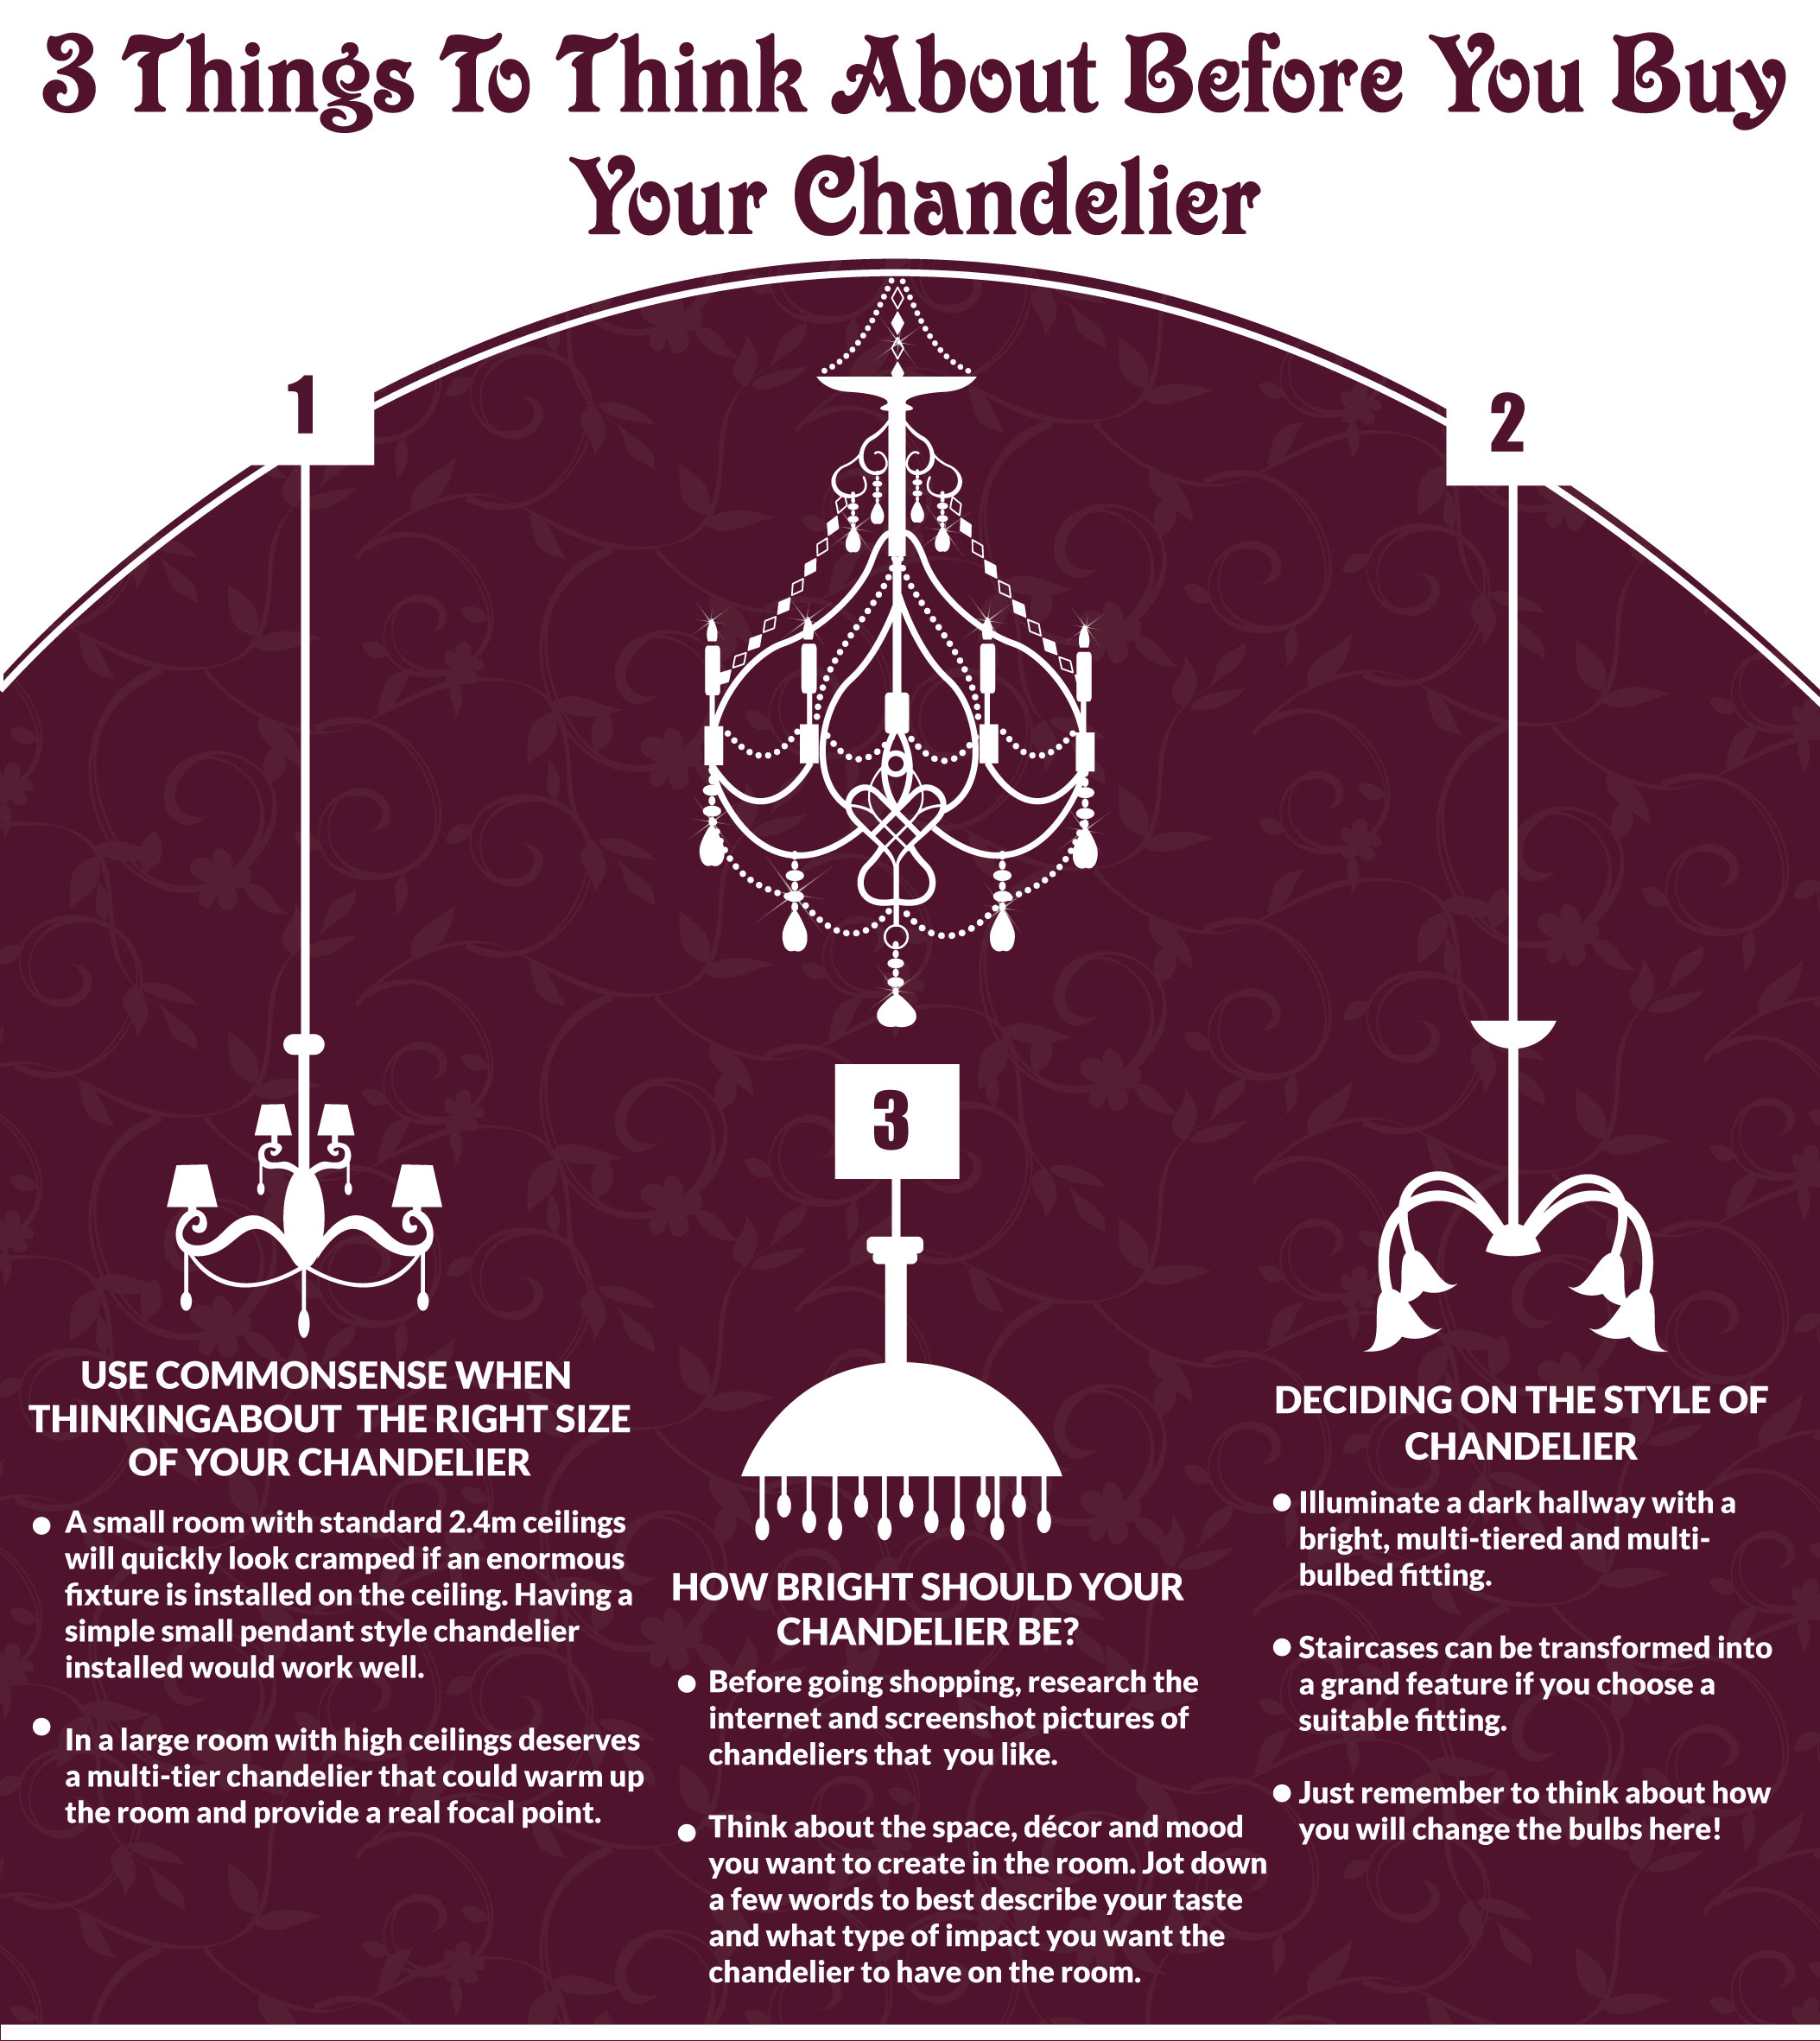 3 Things To Think About Before You Buy A Chandelier